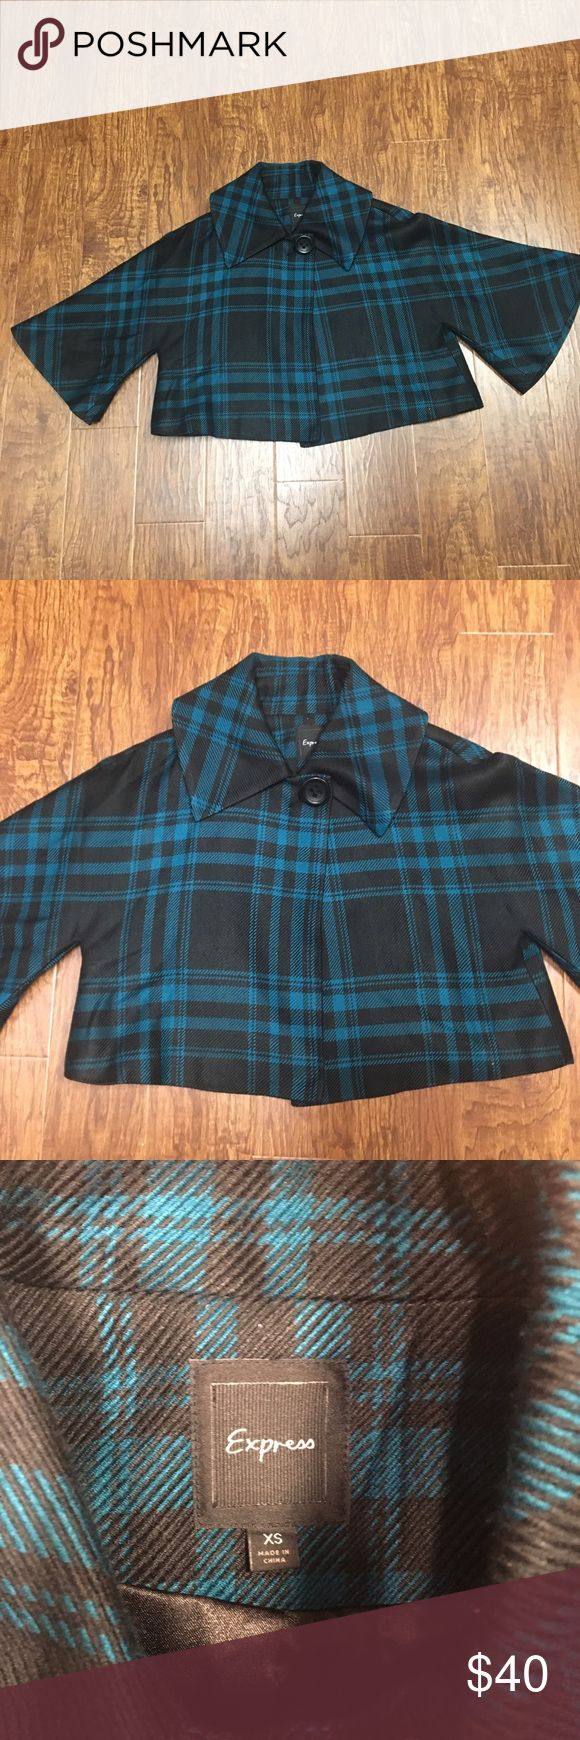 Express teal & black plaid cropped swing coat XS Adorable plaid swing coat. Never worn. Size XS. Fits a 2 up to a 6 Express Jackets & Coats